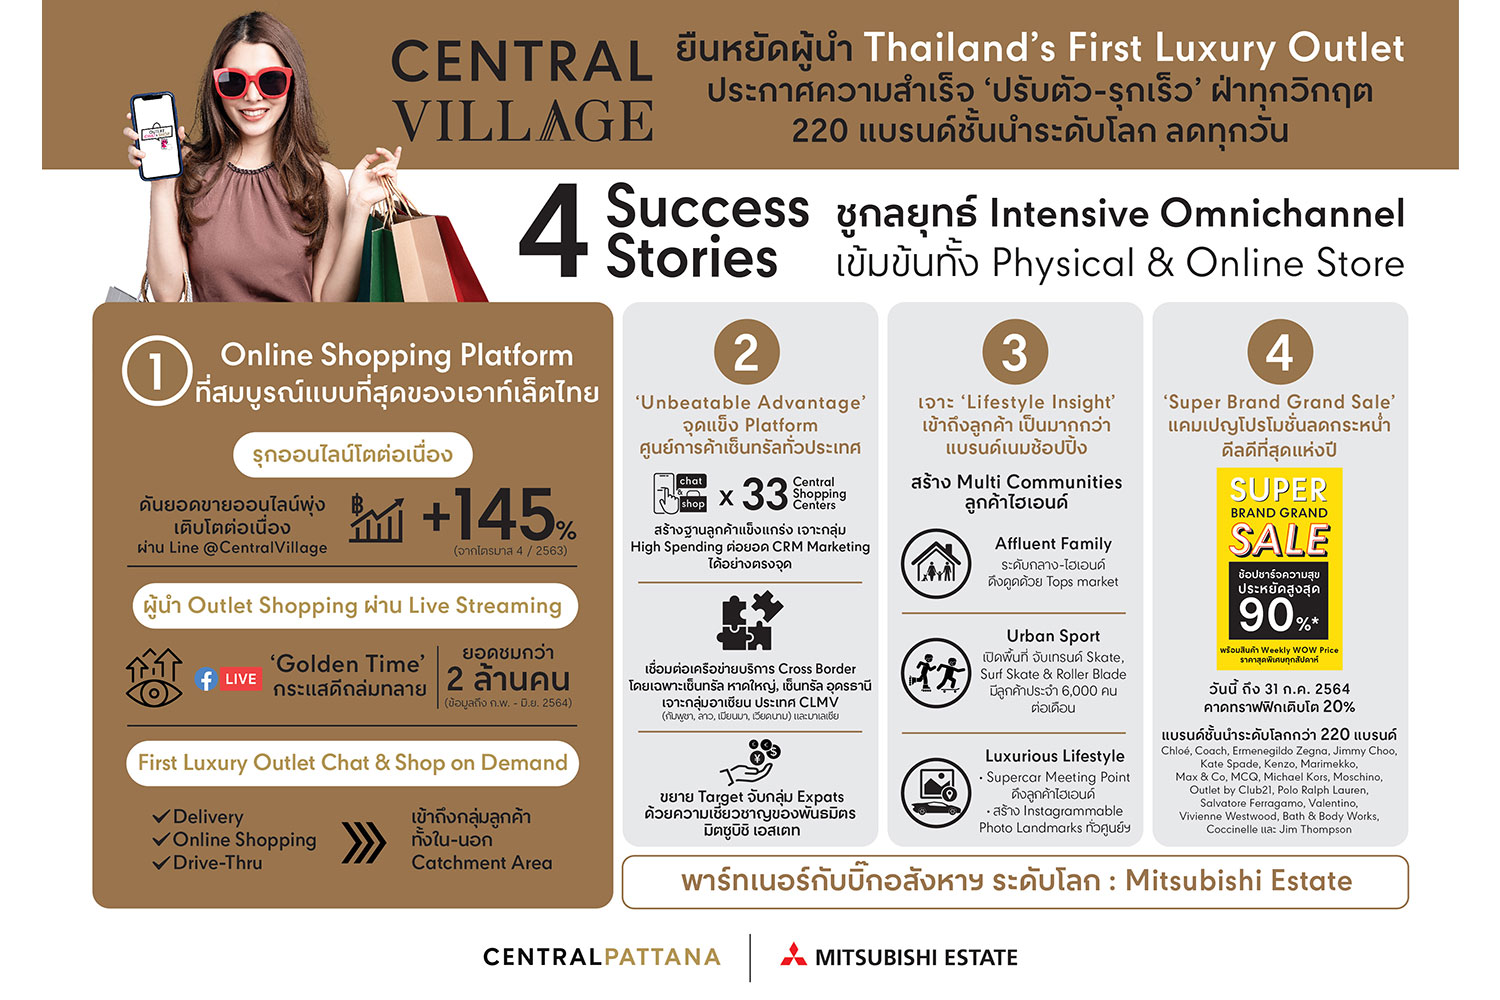 Thailand's first luxury outlet 'Central Village' sees success from quick and proactive moves to fight the pandemic